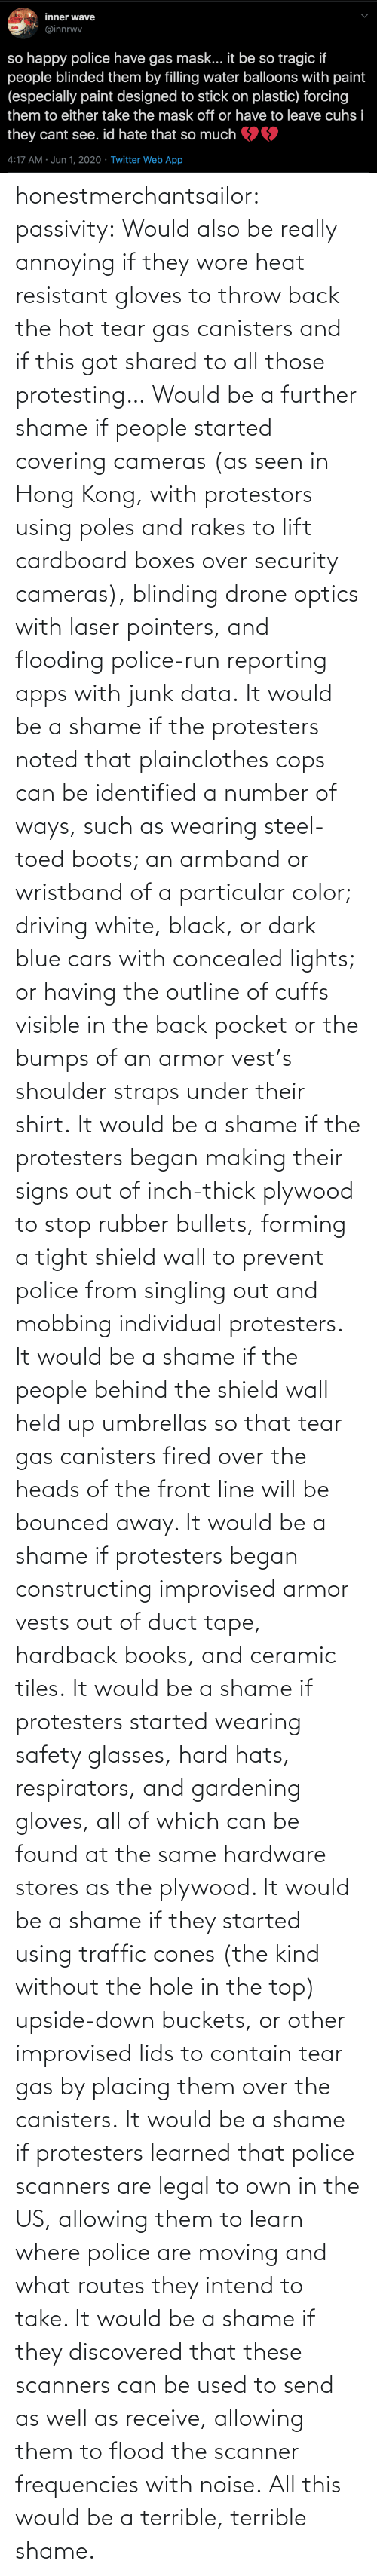 hard: honestmerchantsailor: passivity: Would also be really annoying if they wore heat resistant gloves to throw back the hot tear gas canisters and if this got shared to all those protesting… Would be a further shame if people started covering cameras (as seen in Hong Kong, with protestors using poles and rakes to lift cardboard boxes over security cameras), blinding drone optics with laser pointers, and flooding police-run reporting apps with junk data. It would be a shame if the protesters noted that plainclothes cops can be identified a number of ways, such as wearing steel-toed boots; an armband or wristband of a particular color; driving white, black, or dark blue cars with concealed lights; or having the outline of cuffs visible in the back pocket or the bumps of an armor vest's shoulder straps under their shirt. It would be a shame if the protesters began making their signs out of inch-thick plywood to stop rubber bullets, forming a tight shield wall to prevent police from singling out and mobbing individual protesters. It would be a shame if the people behind the shield wall held up umbrellas so that tear gas canisters fired over the heads of the front line will be bounced away. It would be a shame if protesters began constructing improvised armor vests out of duct tape, hardback books, and ceramic tiles. It would be a shame if protesters started wearing safety glasses, hard hats, respirators, and gardening gloves, all of which can be found at the same hardware stores as the plywood. It would be a shame if they started using traffic cones (the kind without the hole in the top) upside-down buckets, or other improvised lids to contain tear gas by placing them over the canisters. It would be a shame if protesters learned that police scanners are legal to own in the US, allowing them to learn where police are moving and what routes they intend to take. It would be a shame if they discovered that these scanners can be used to send as well as receive, allowing them to flood the scanner frequencies with noise. All this would be a terrible, terrible shame.